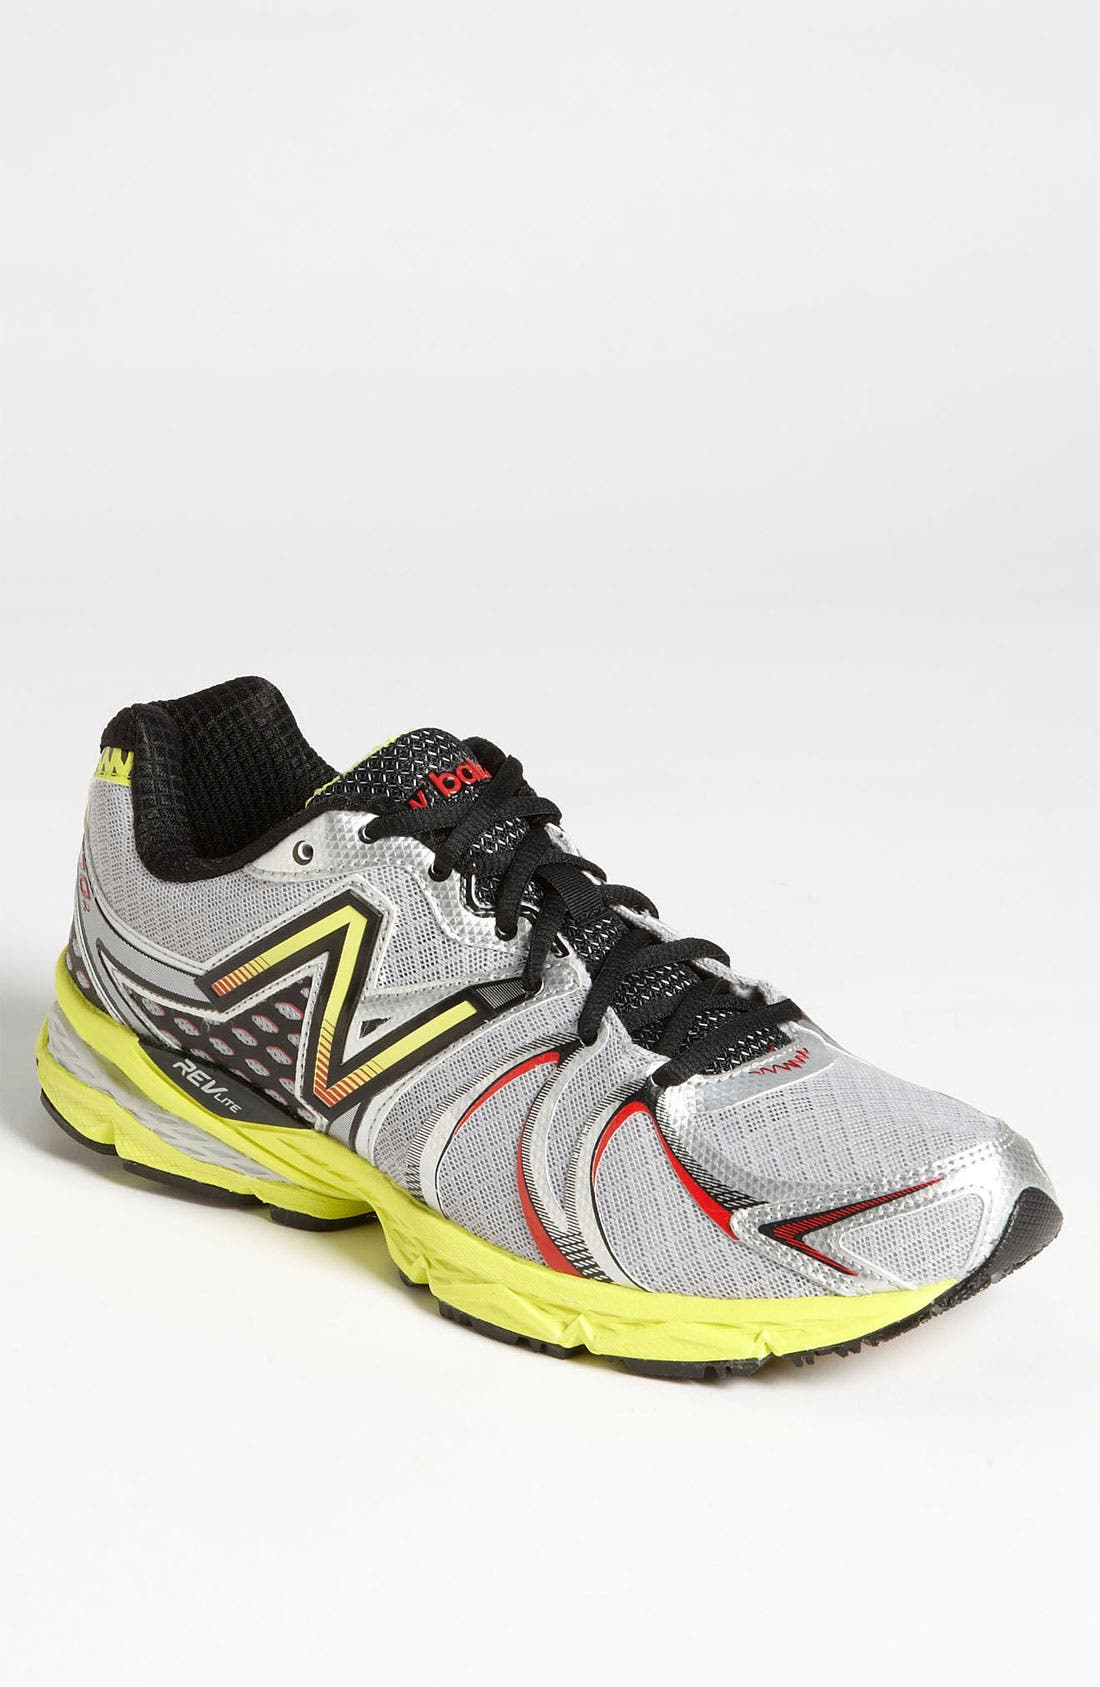 Main Image - New Balance '870' Running Shoe (Men)